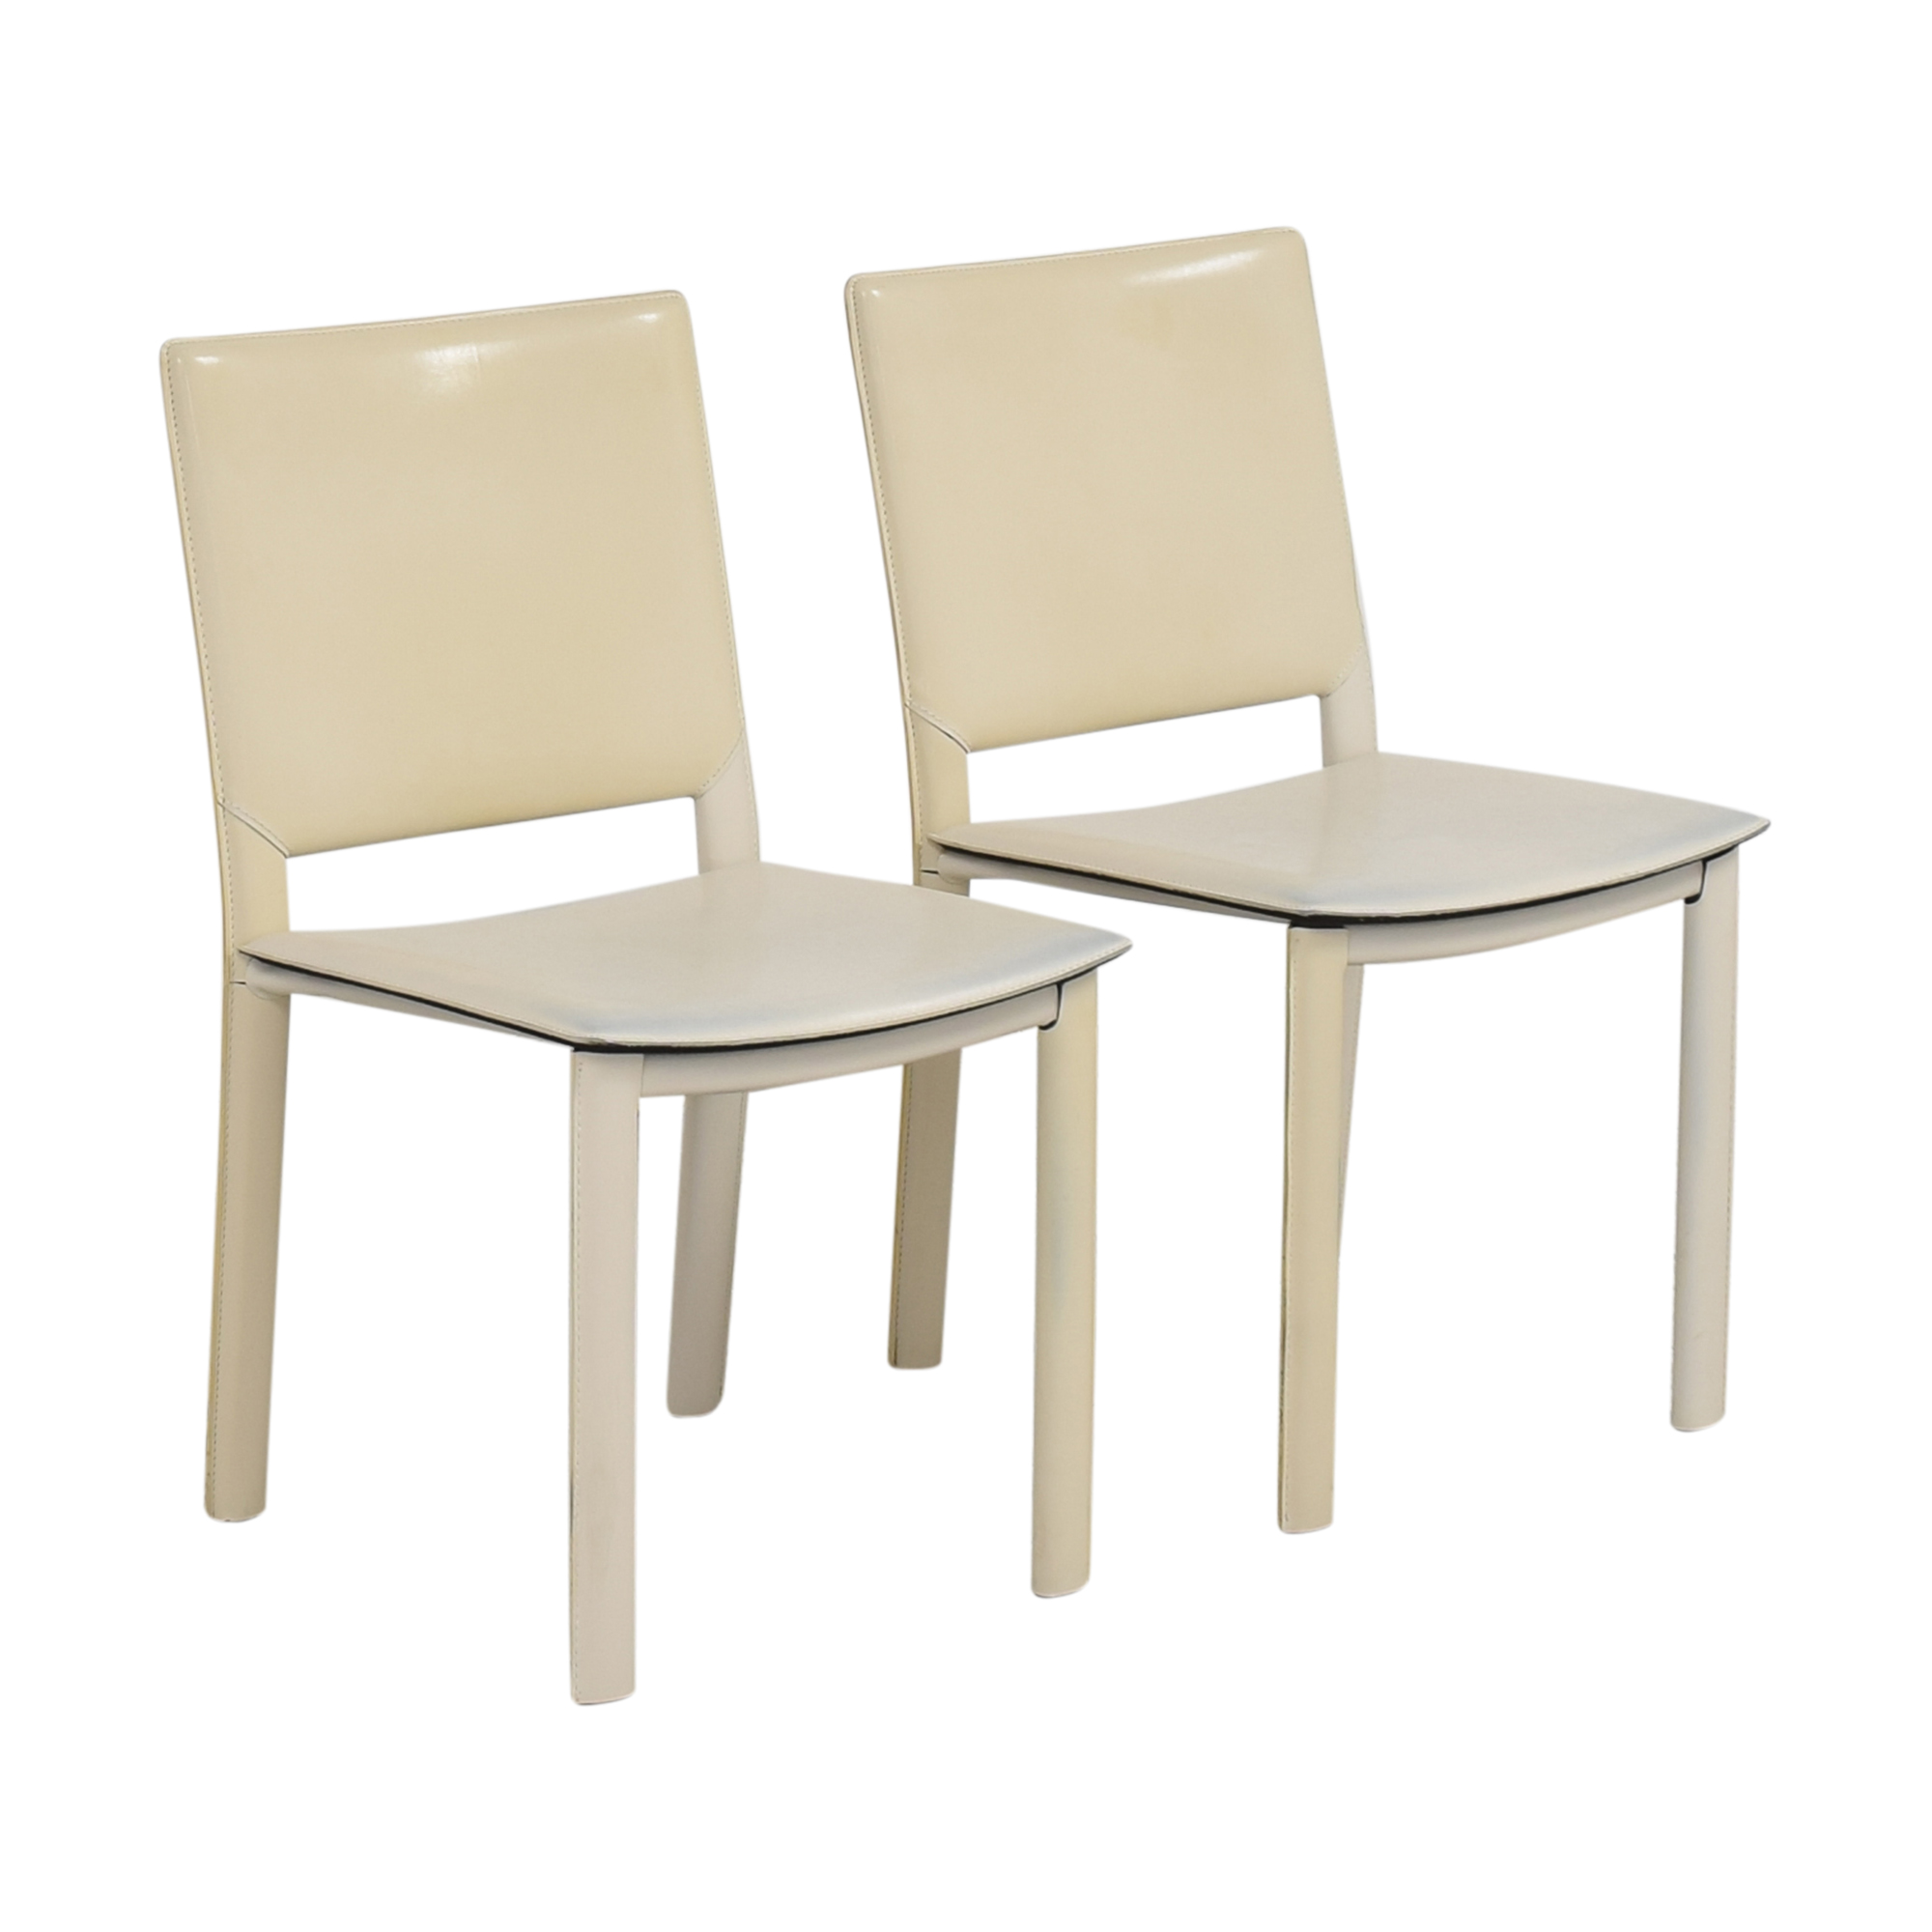 Room & Board Room & Board Madrid Dining Chairs on sale